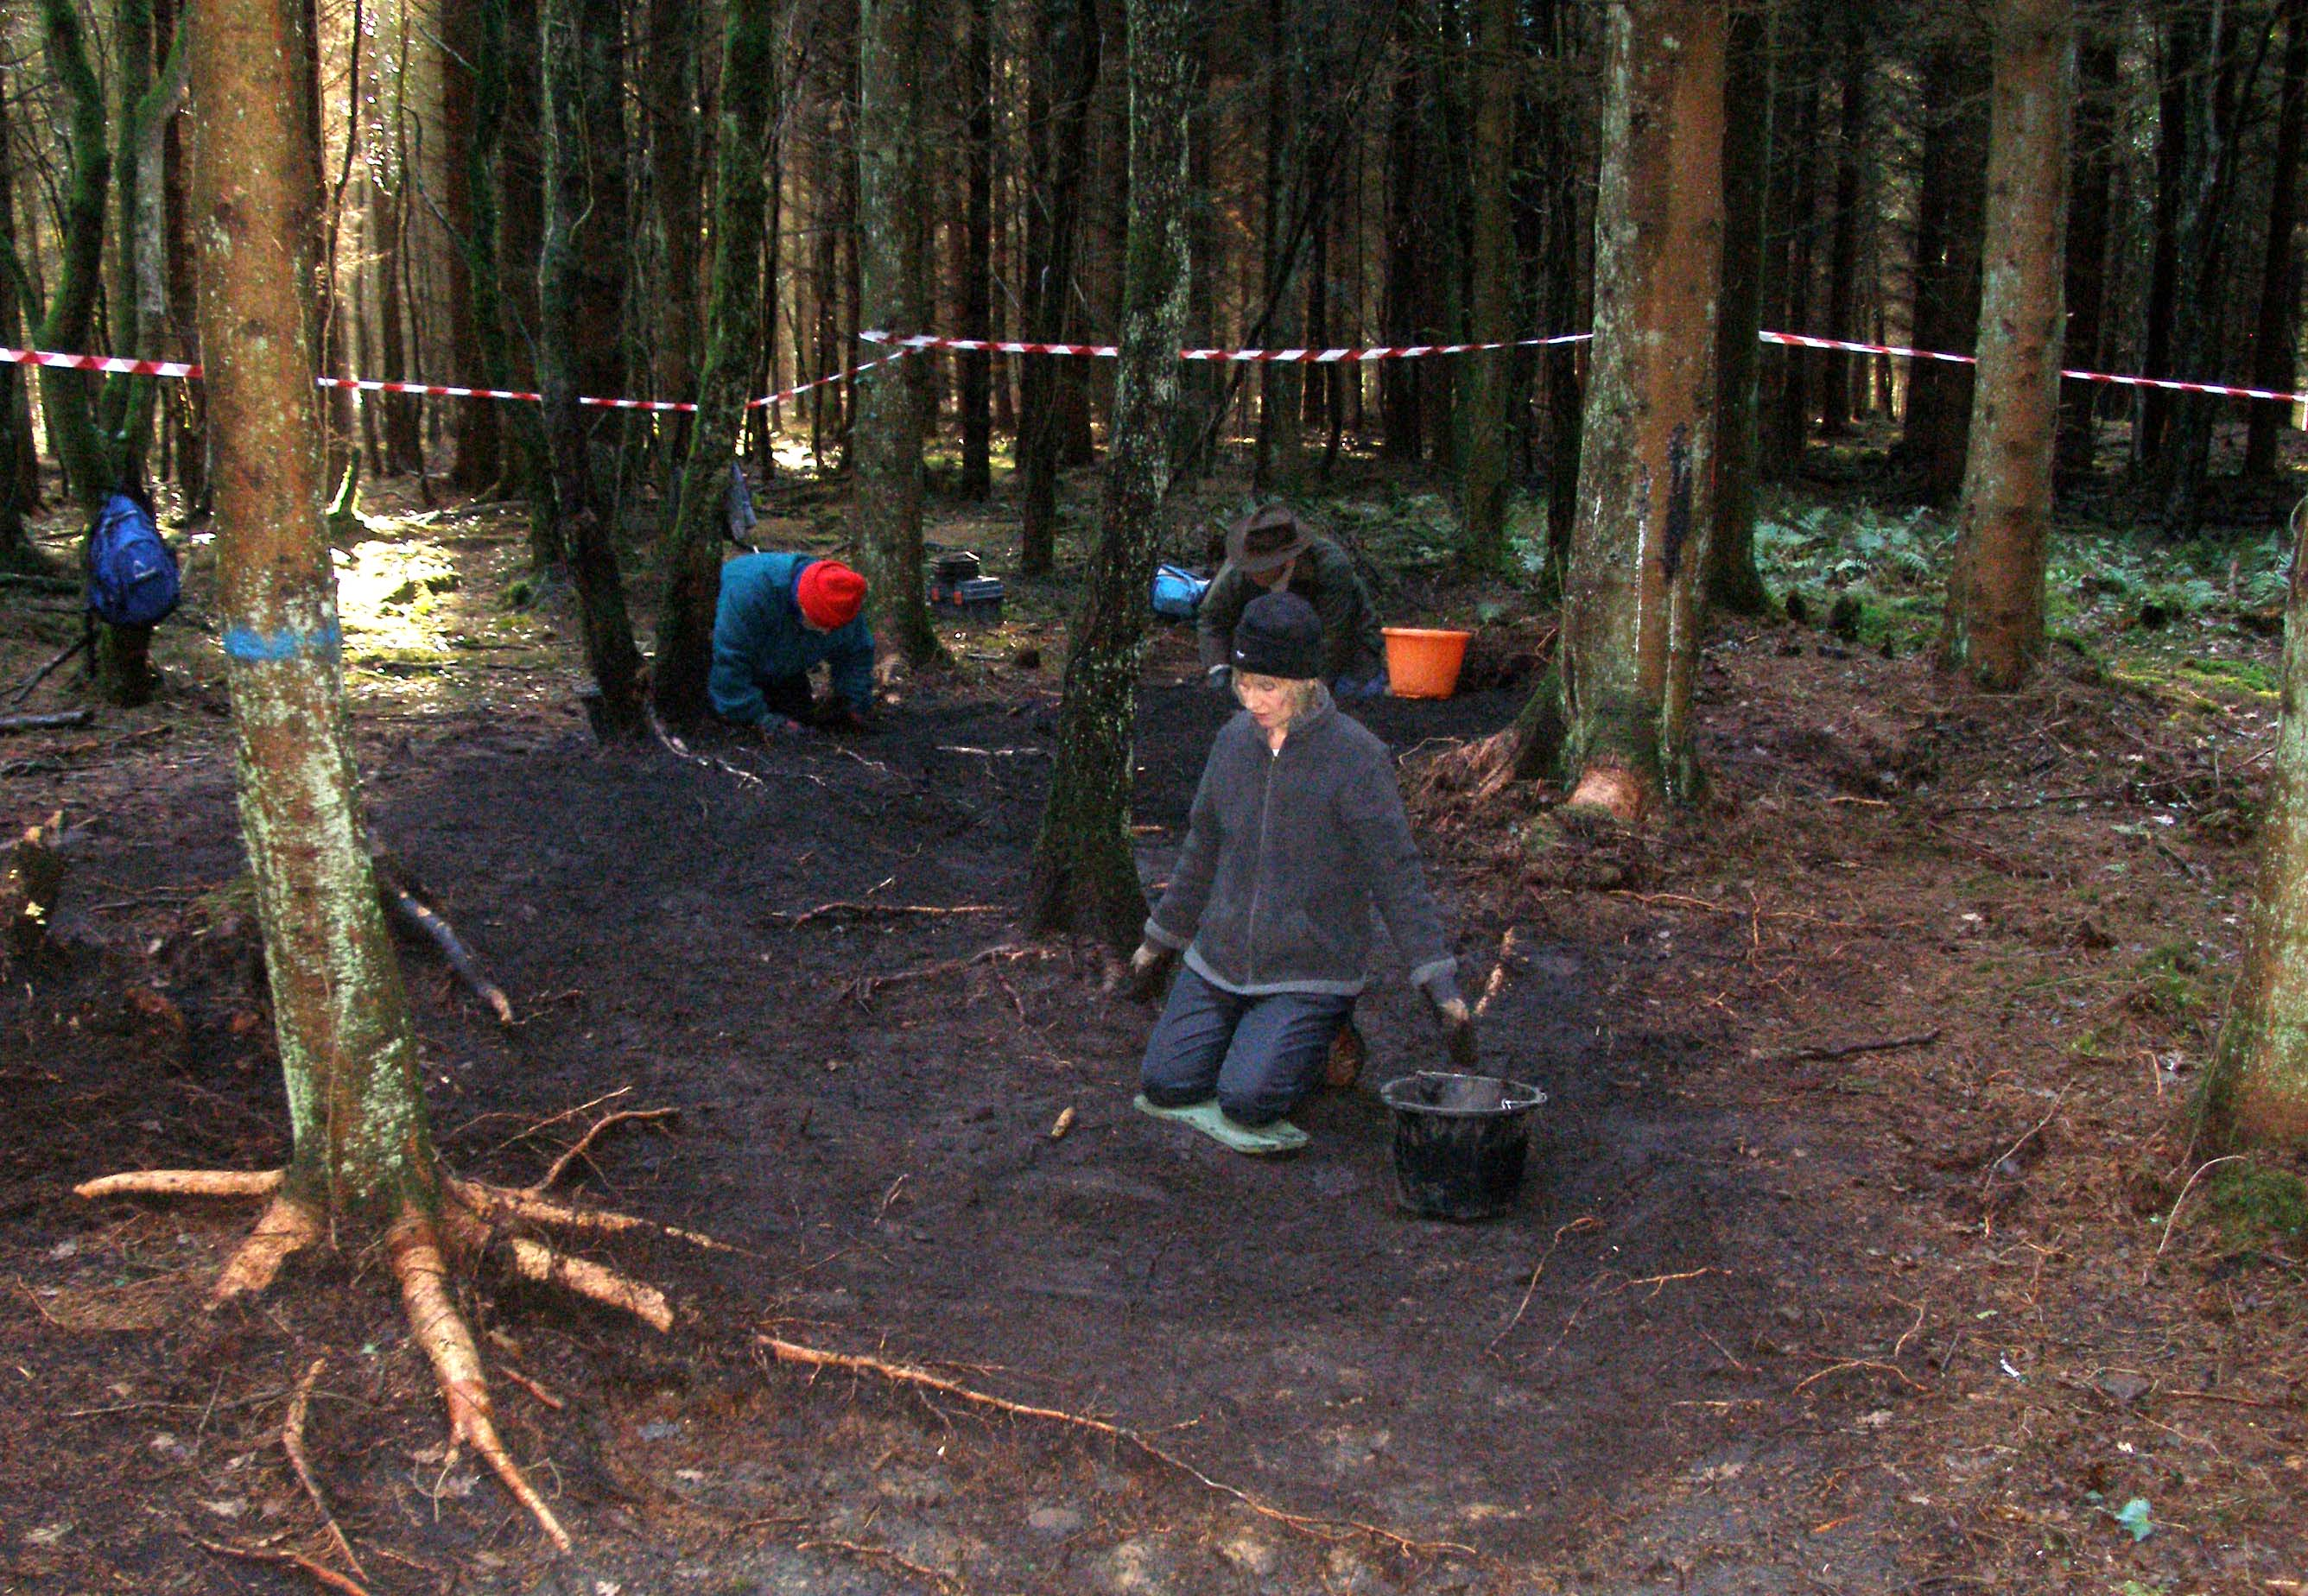 Digging charcoal hearths in Wentwood Forest